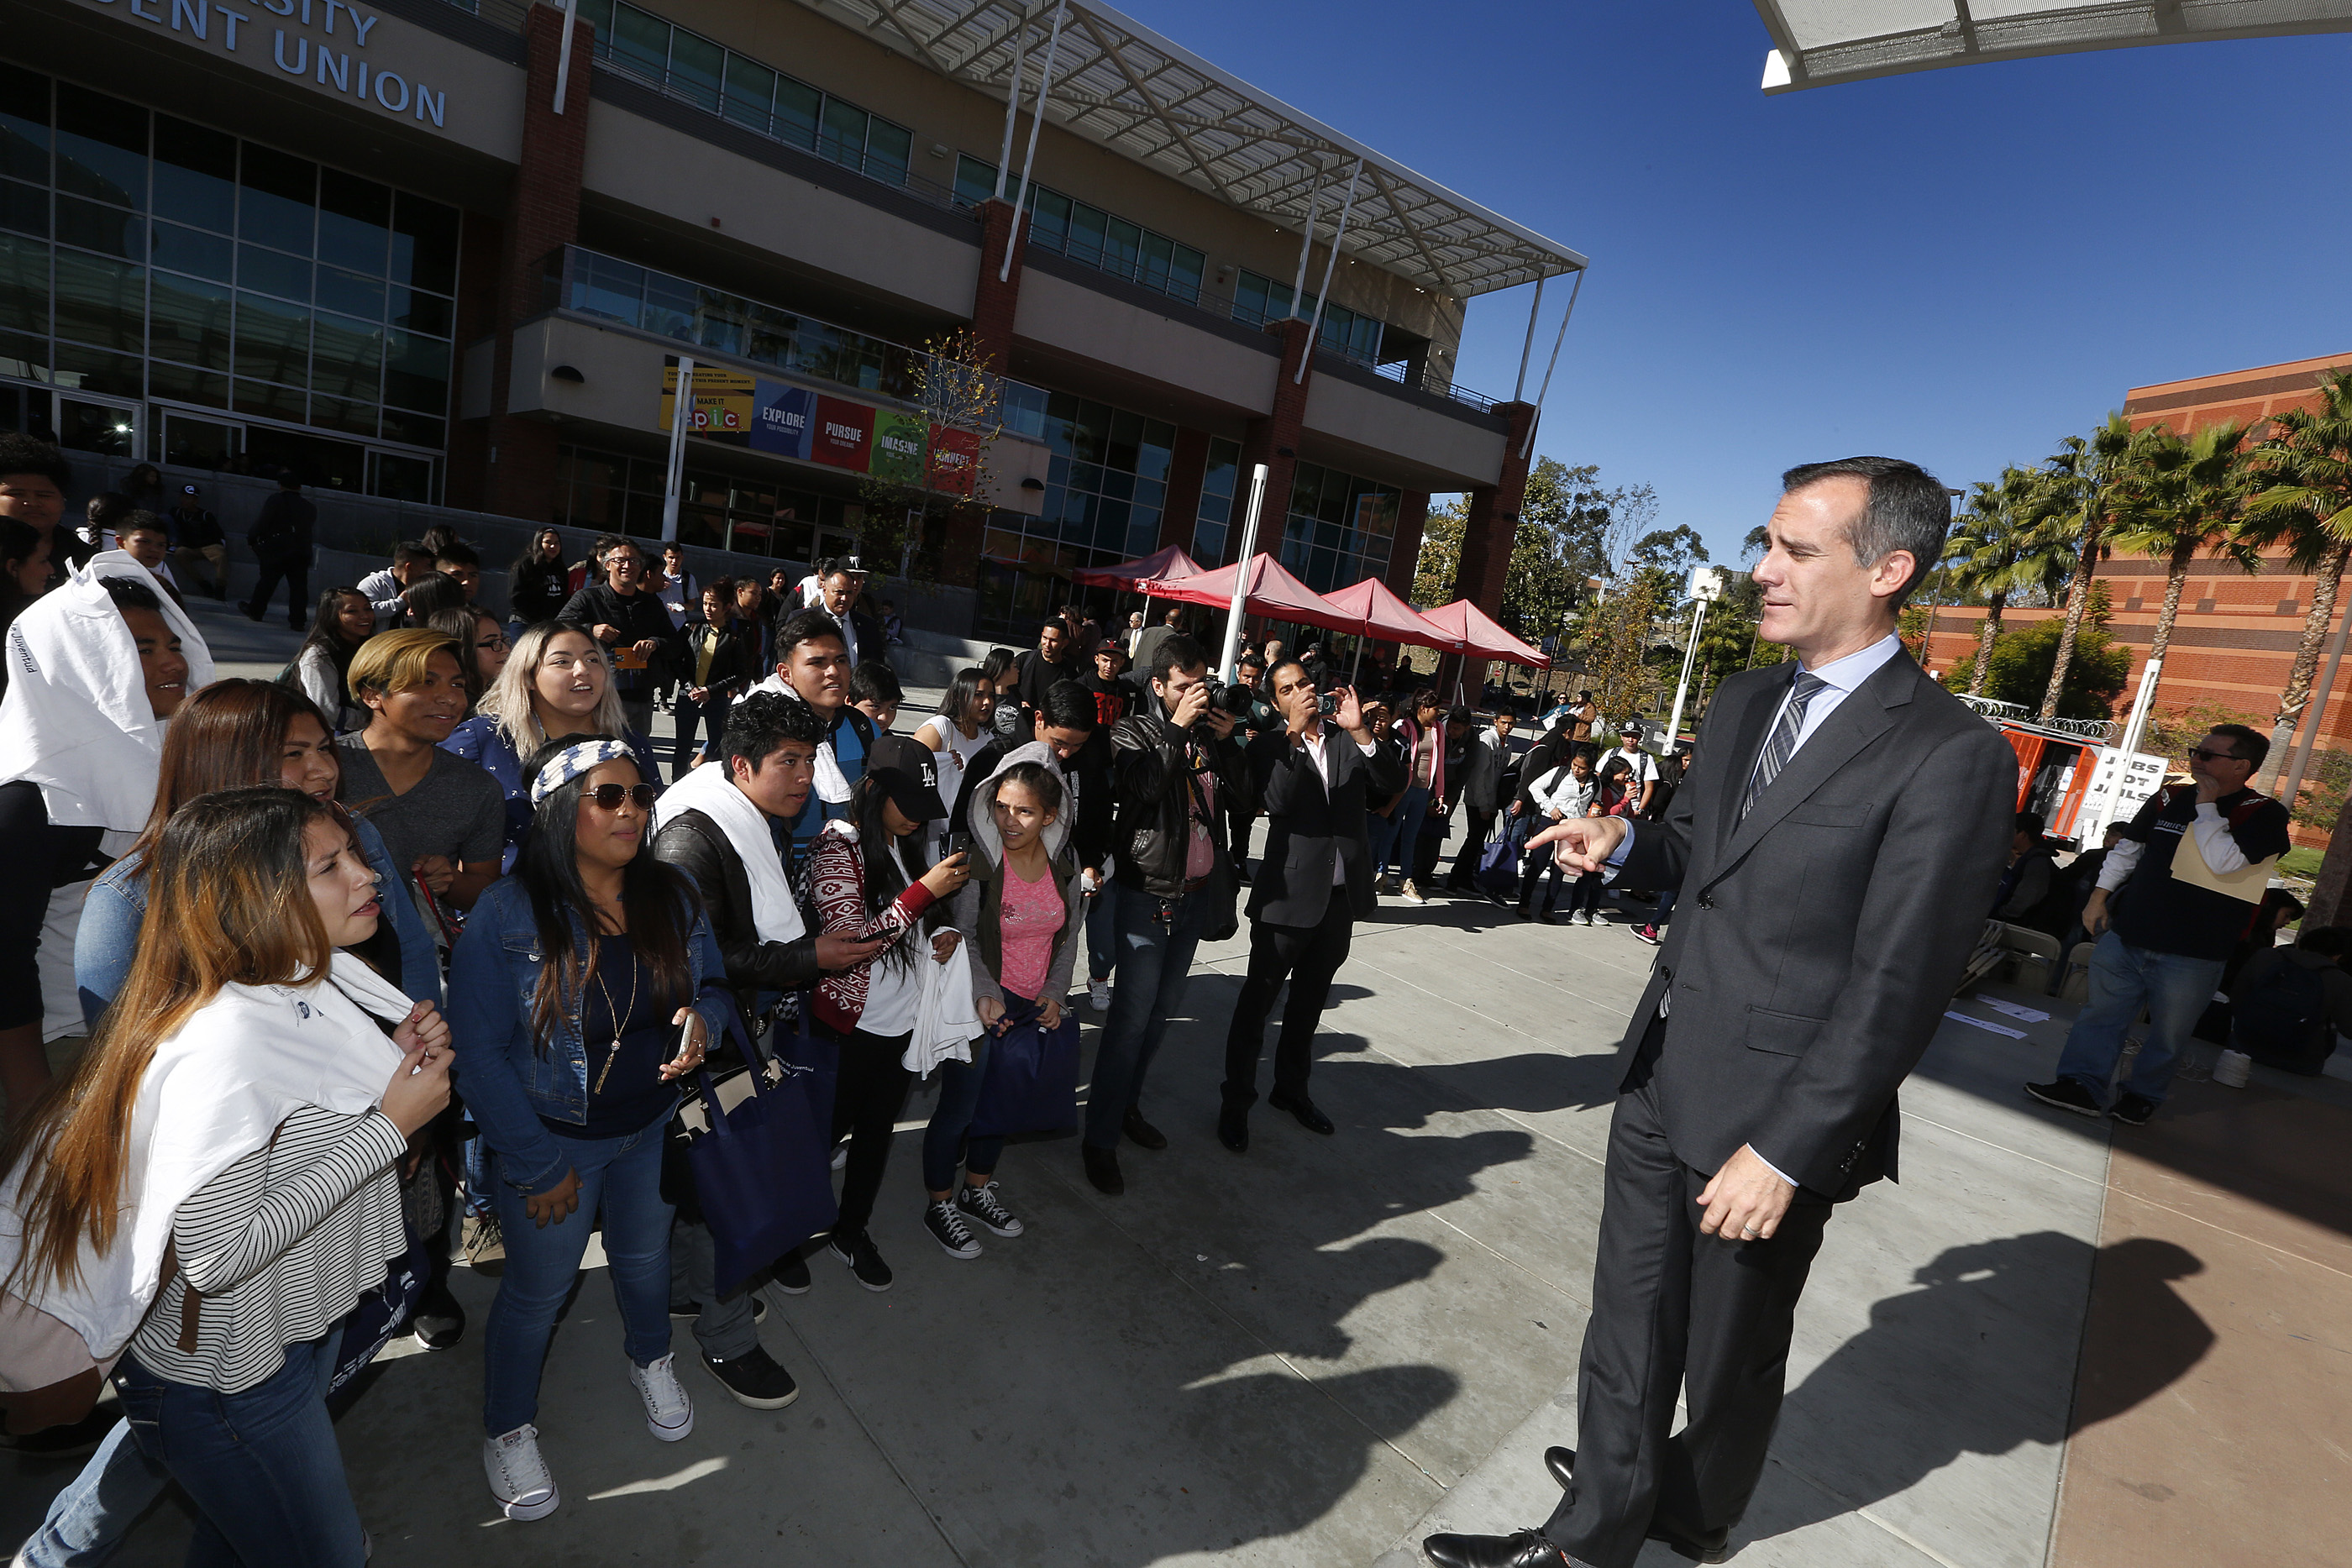 12/02/16/LOS ANGELES/ Mayor Eric Garcetti delivers remarks during the Central American Youth Leadership Conference held at California State University Los Angeles. (Photo by Aurelia Ventura/La Opinion)